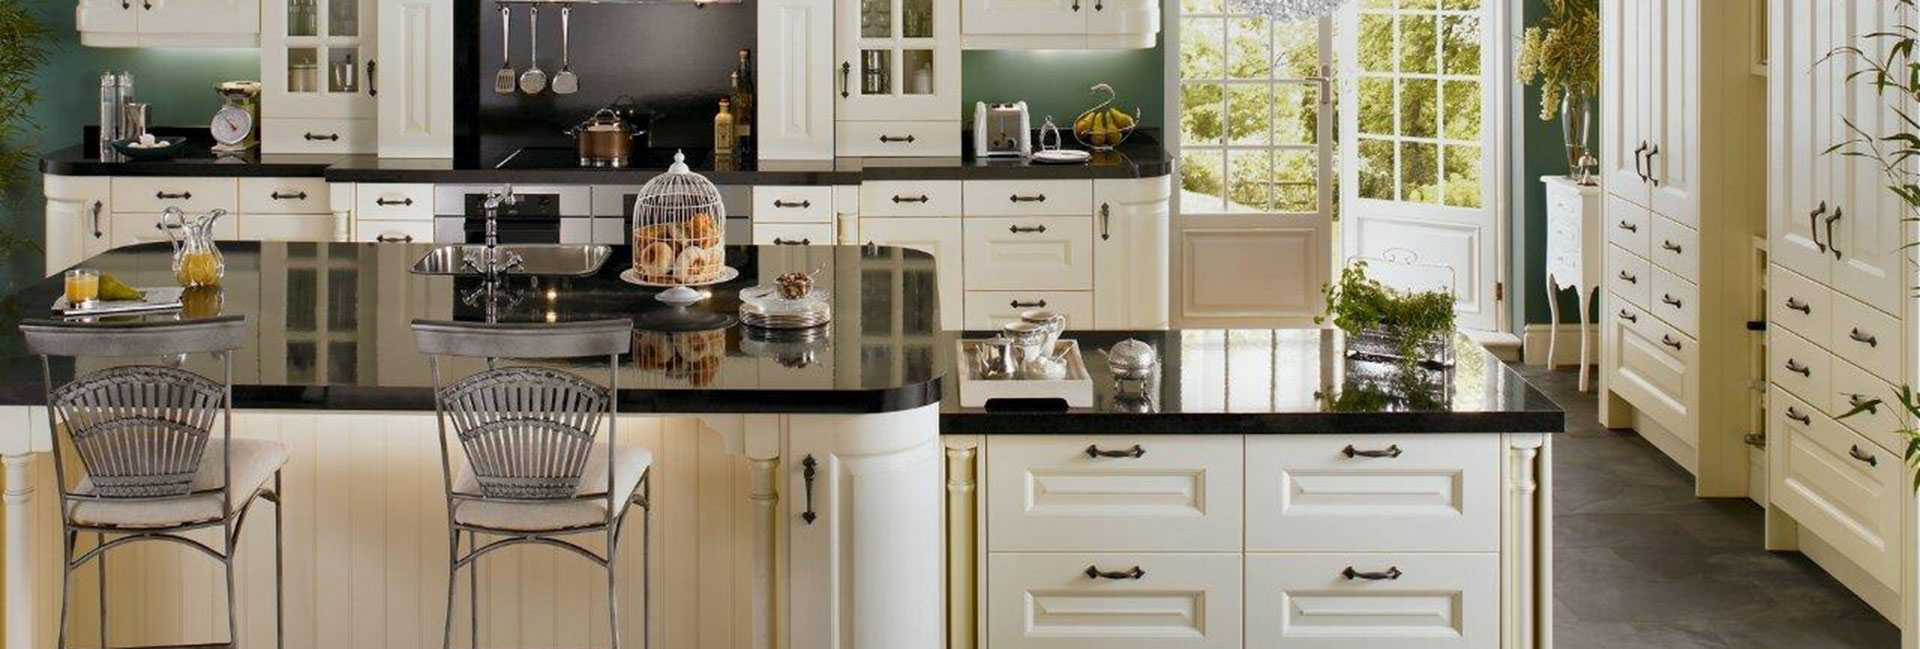 worktop-warehouse-kitchen-4